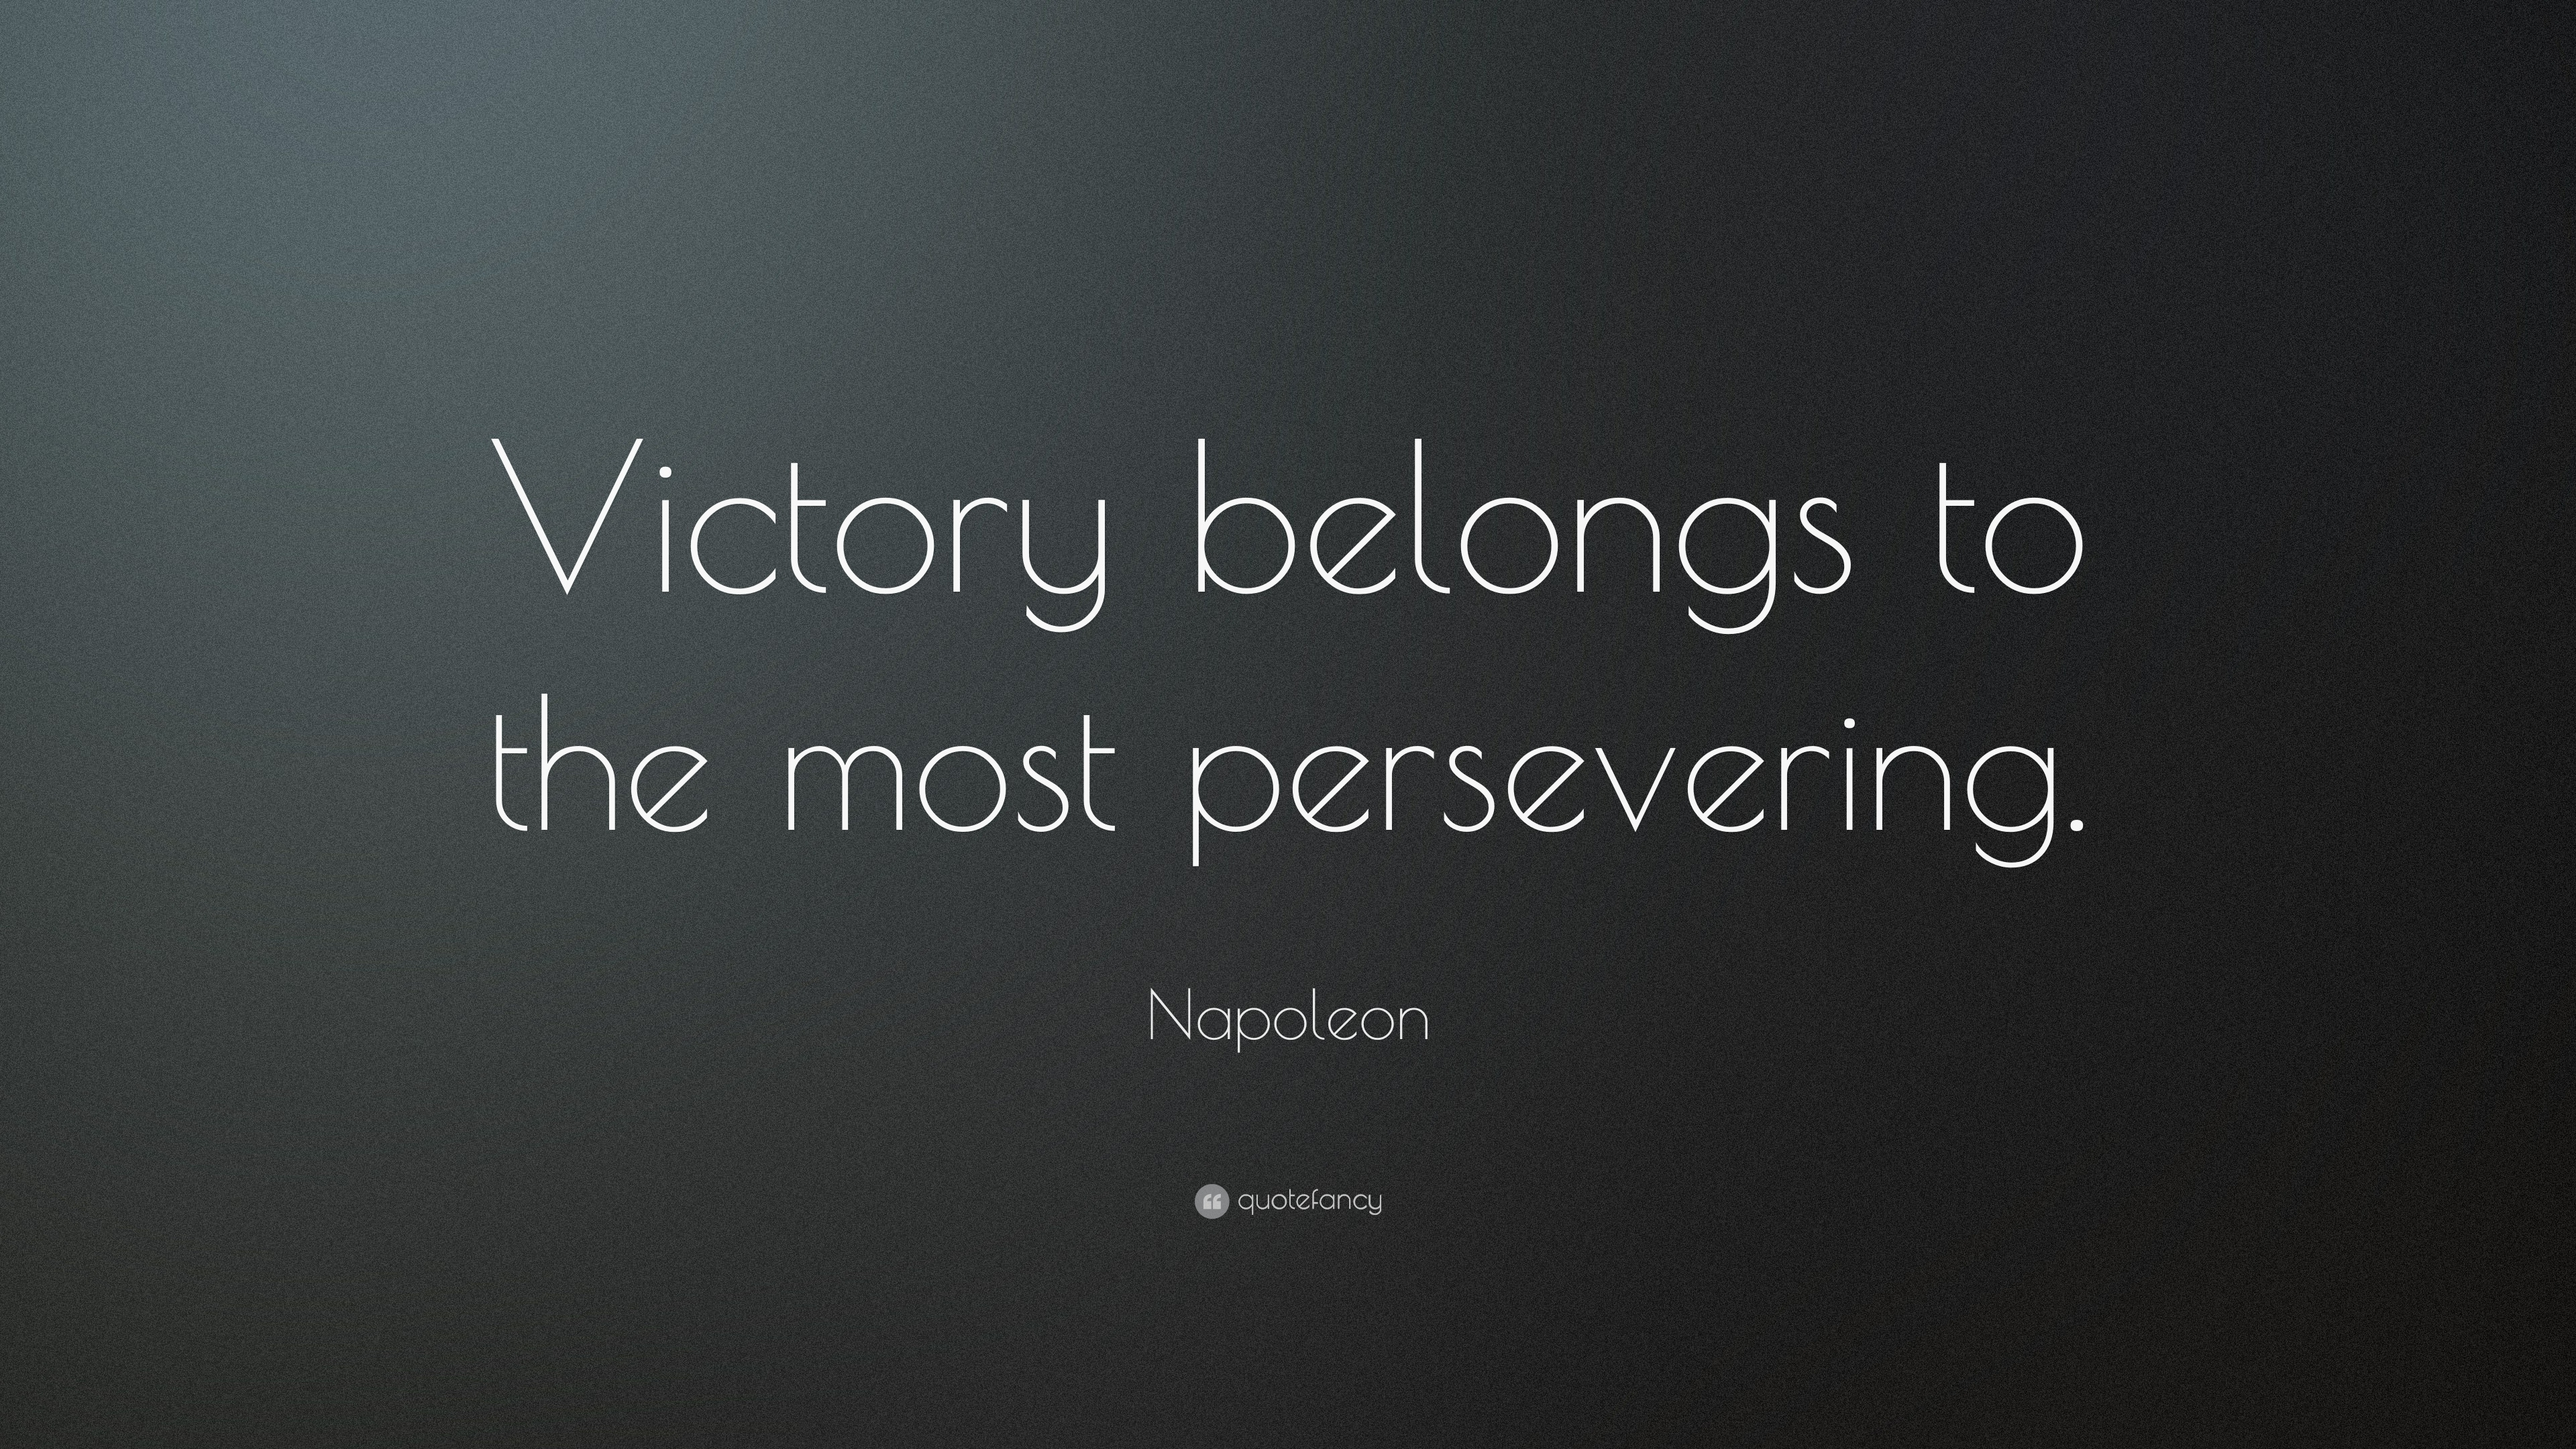 Napoleon quote victory belongs to the most persevering